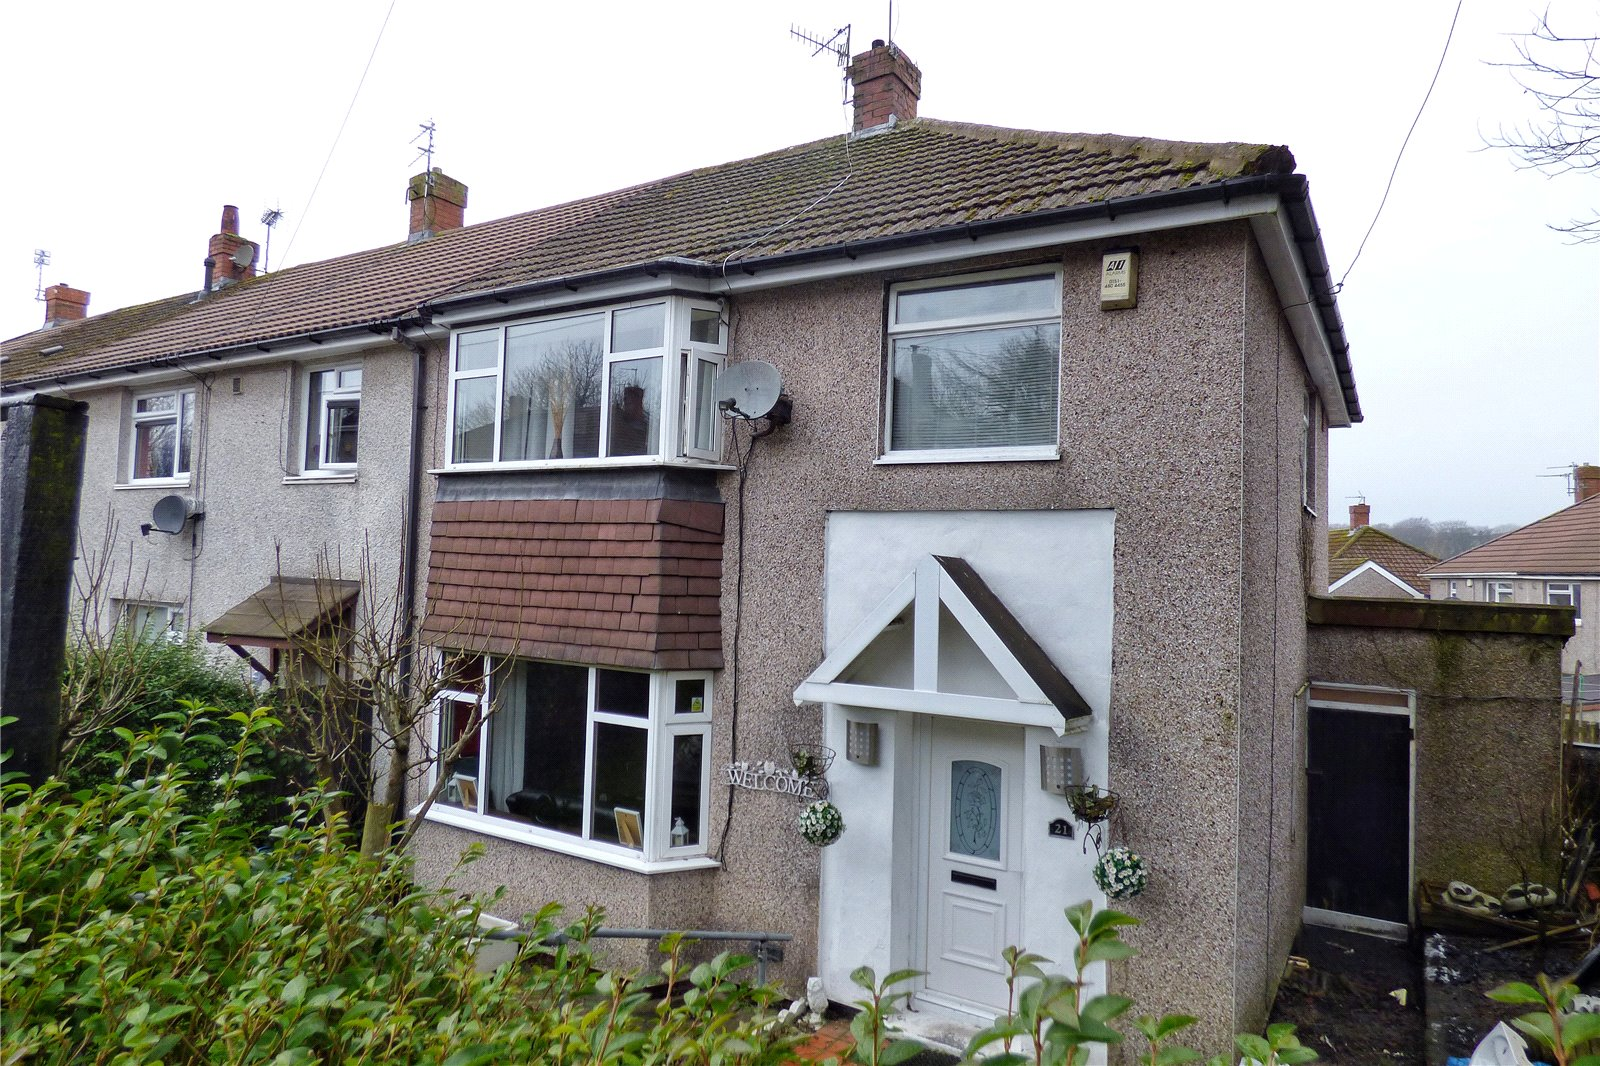 3 Bedrooms Semi Detached House for sale in Rosendale Crescent, Bacup, Lancashire, OL13